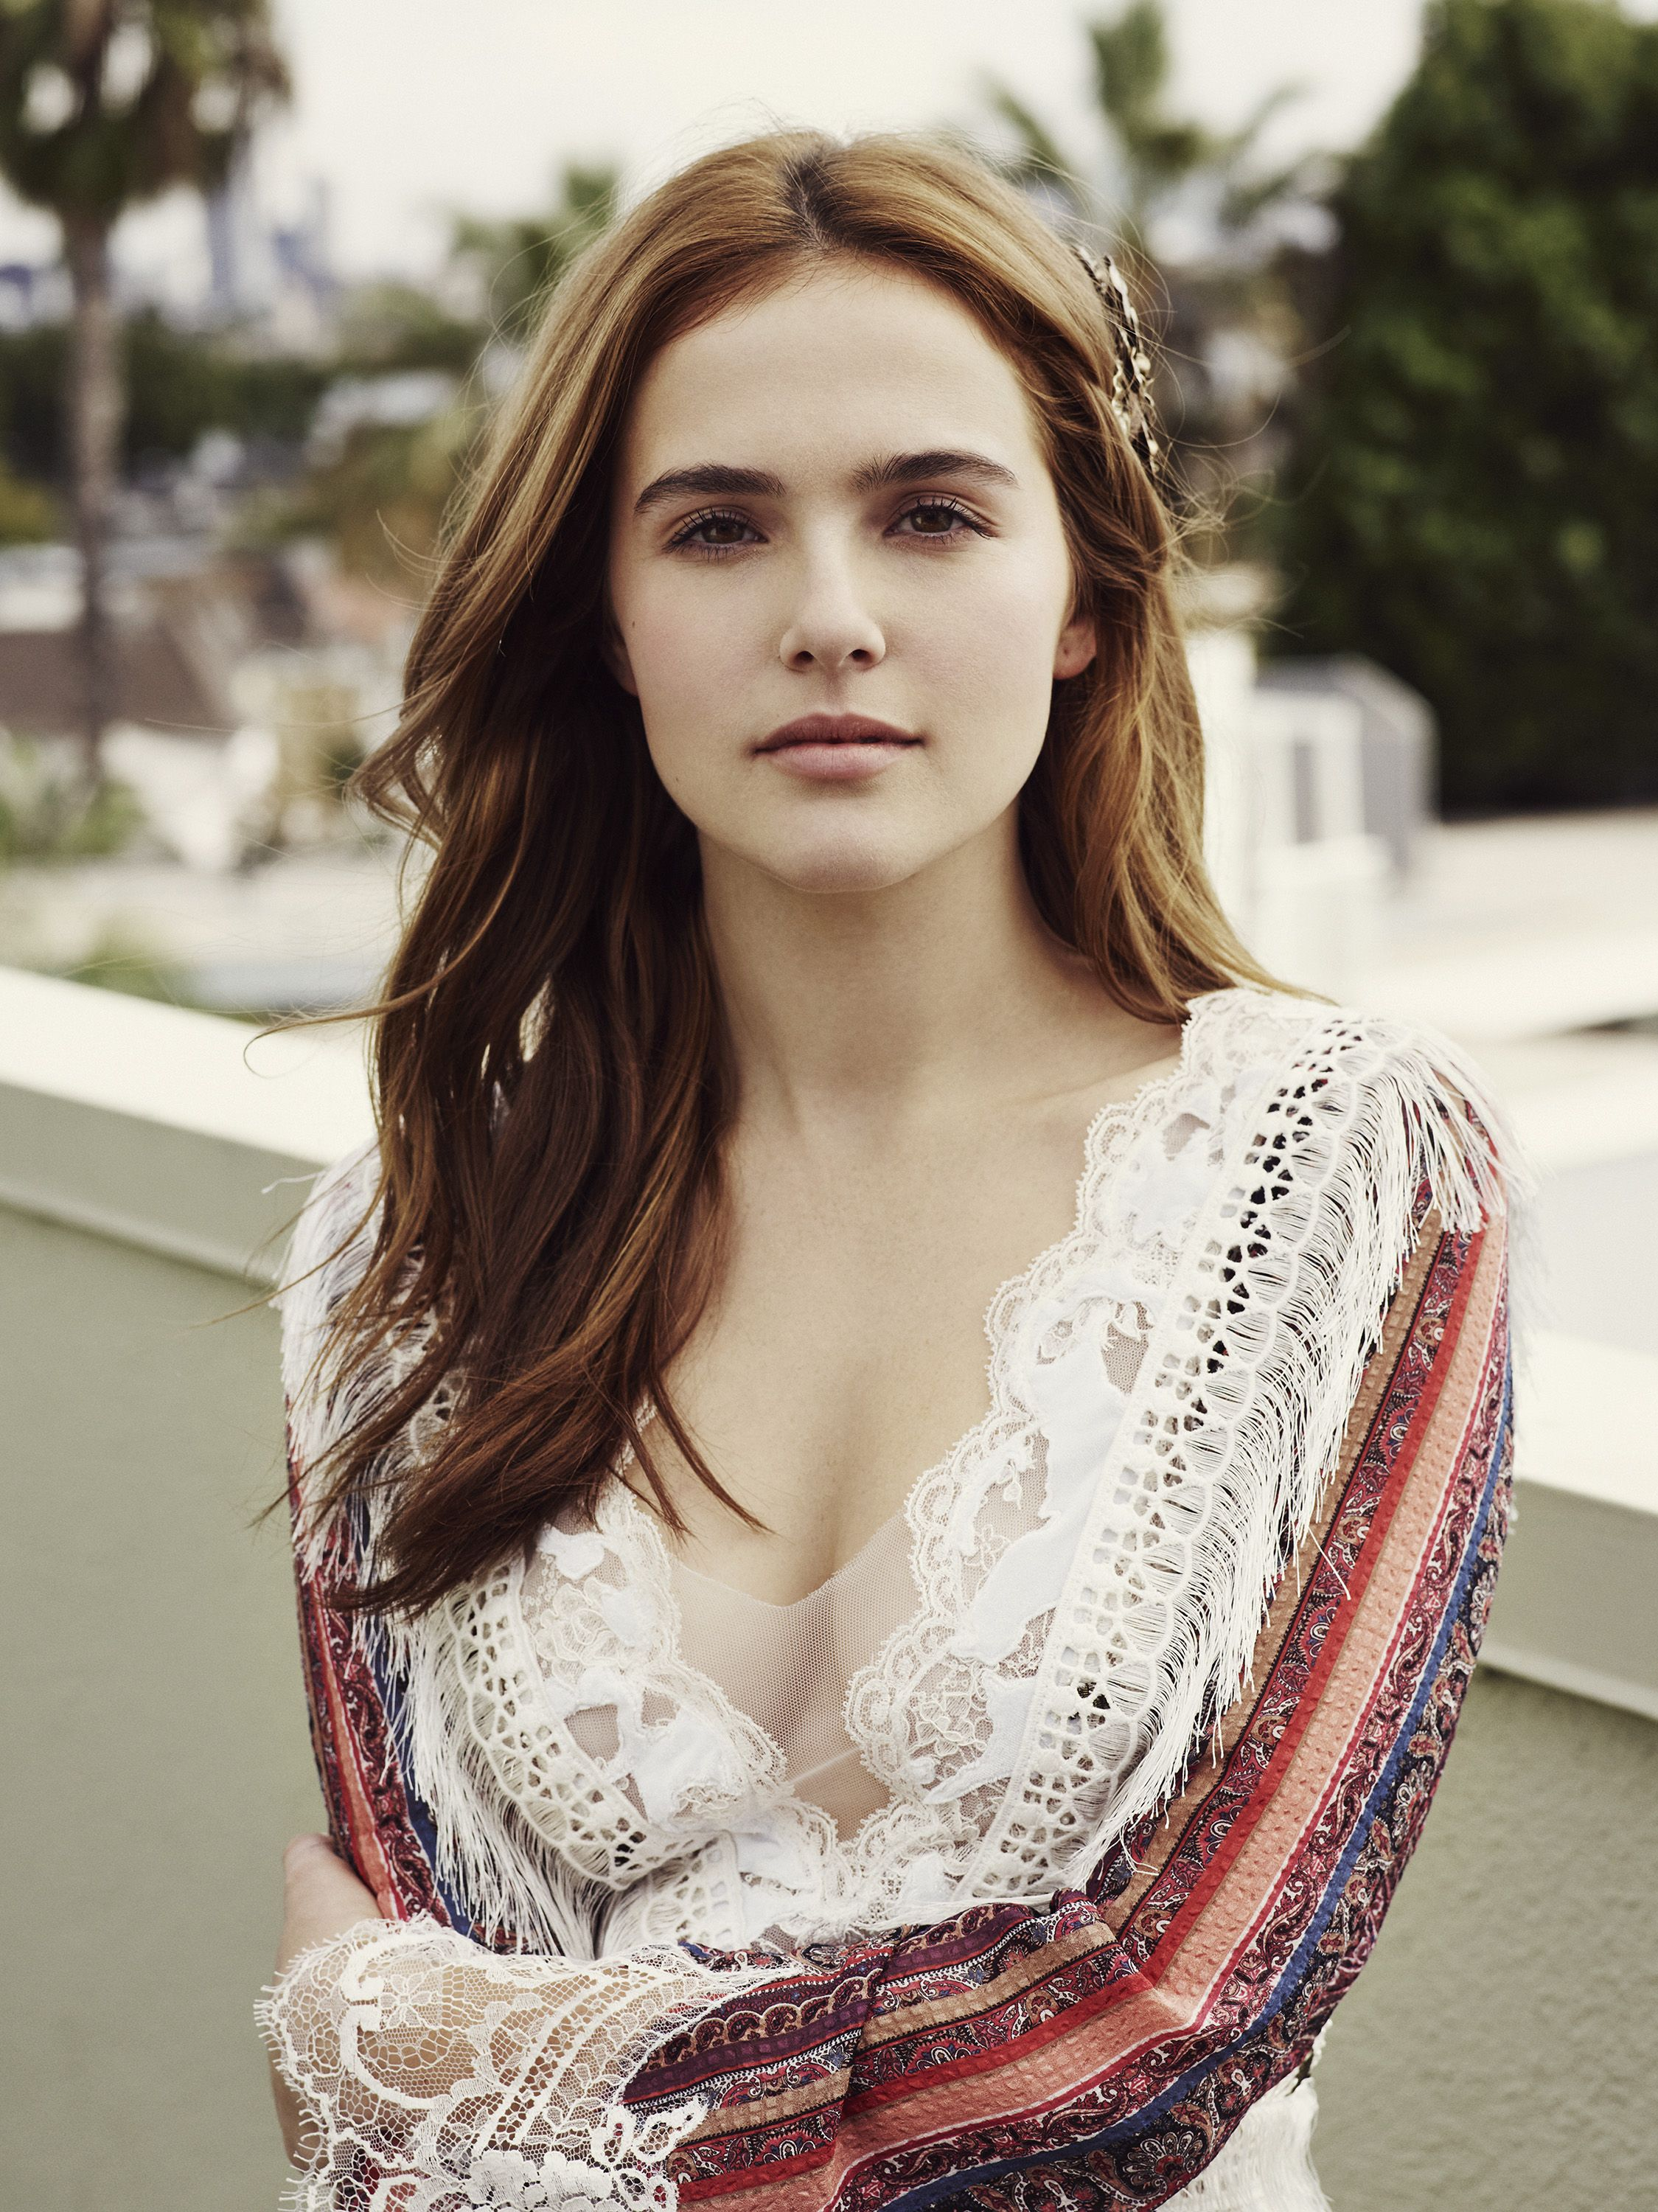 Sexy pic of Zoey Deutch